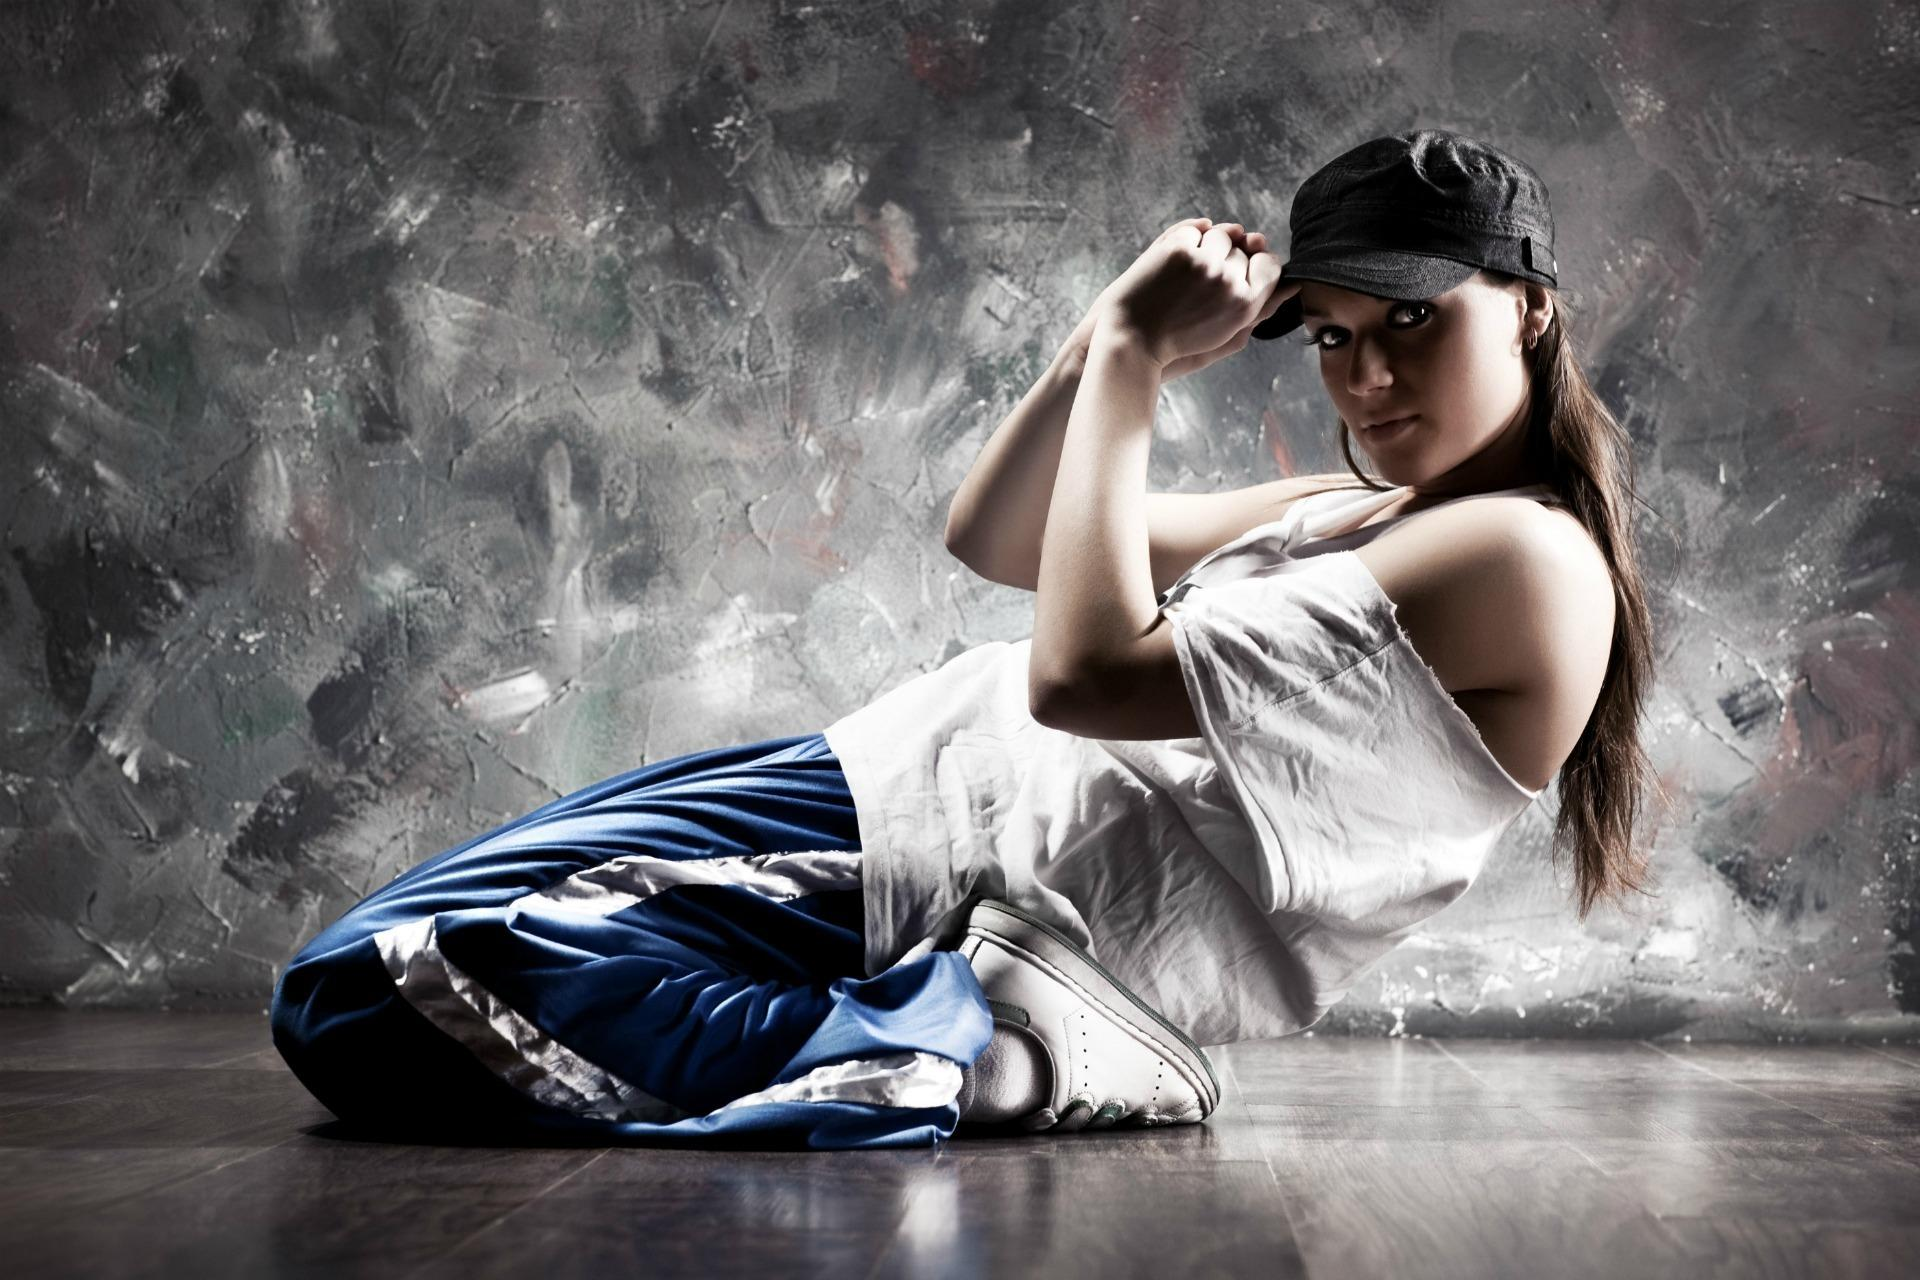 Hip Hop Dance Girl Hd Picture Images amp Pictures   Becuo 1920x1280